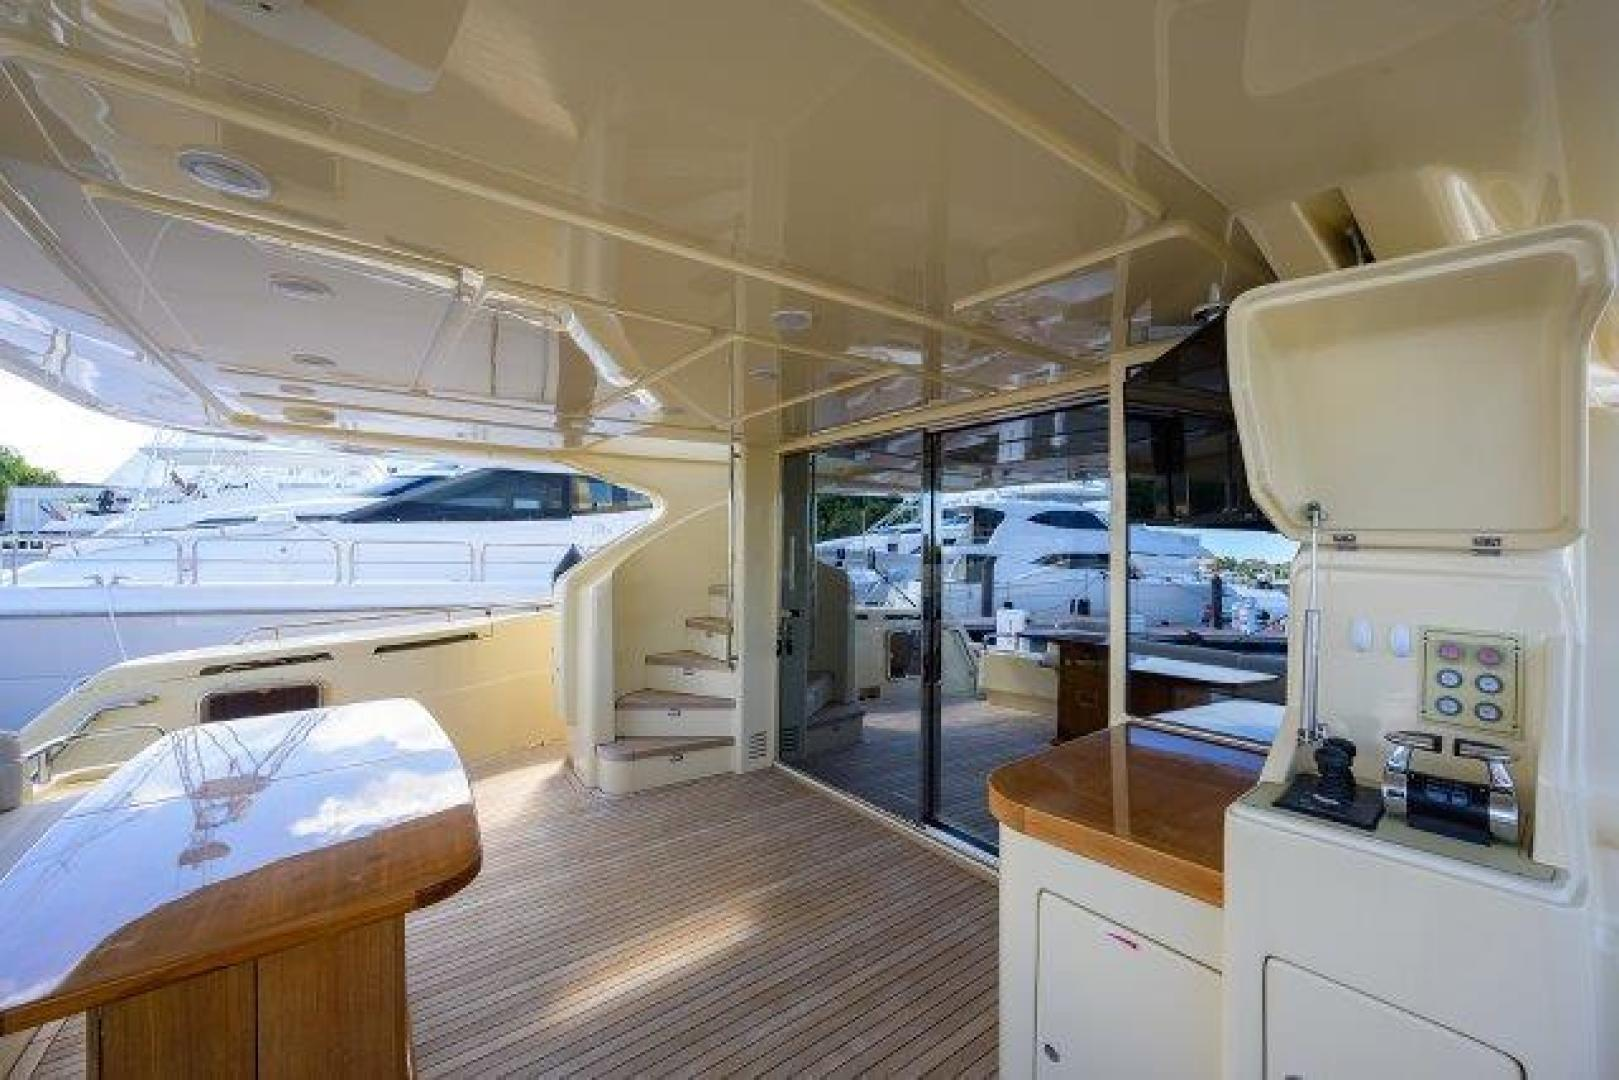 Ferretti Yachts-Altura 840 2010-MISS ALLIED Jupiter-Florida-United States-Aft Deck-1518355 | Thumbnail